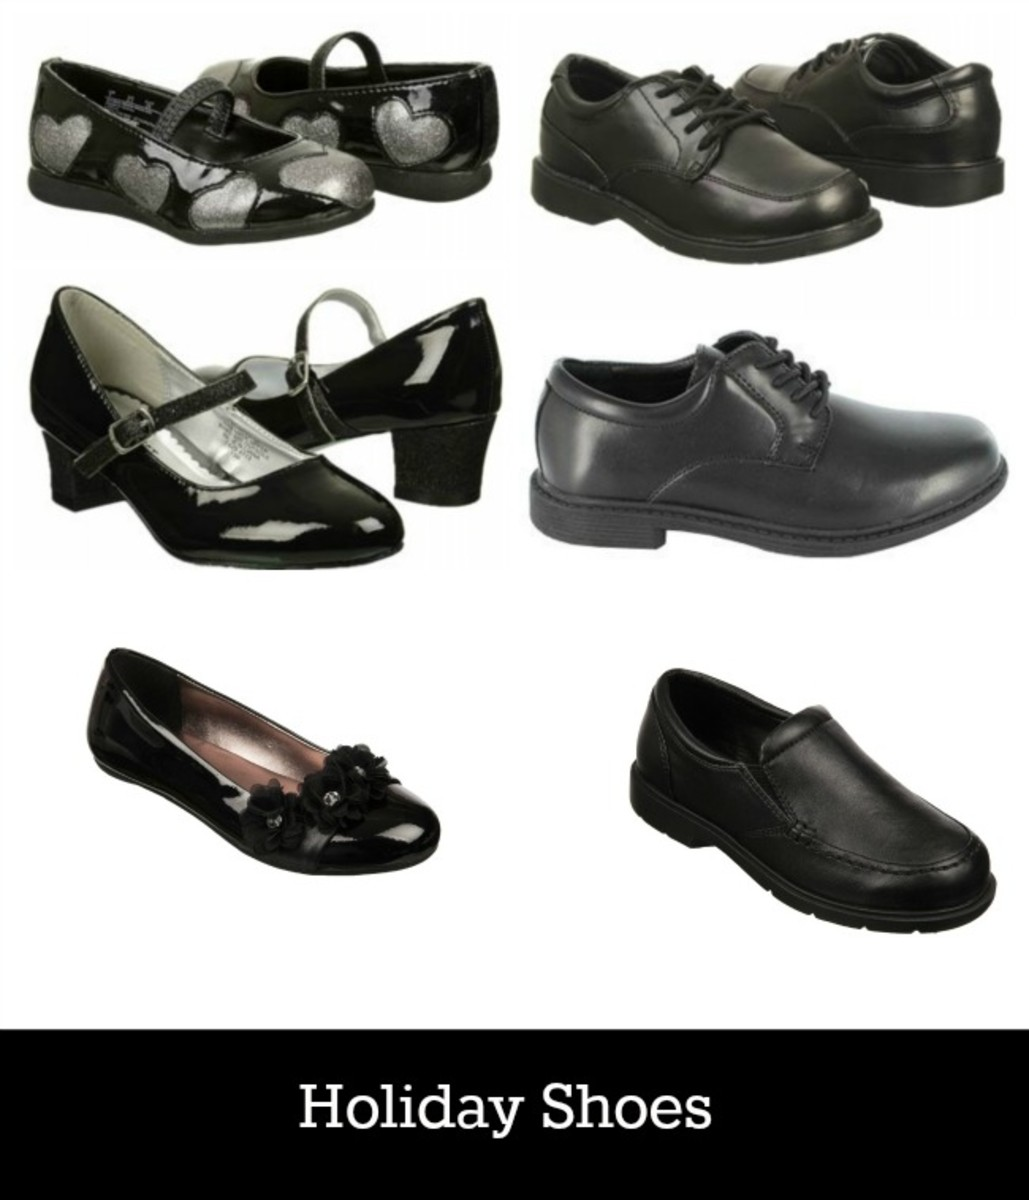 shoes and accessories for momtrendsmomtrends